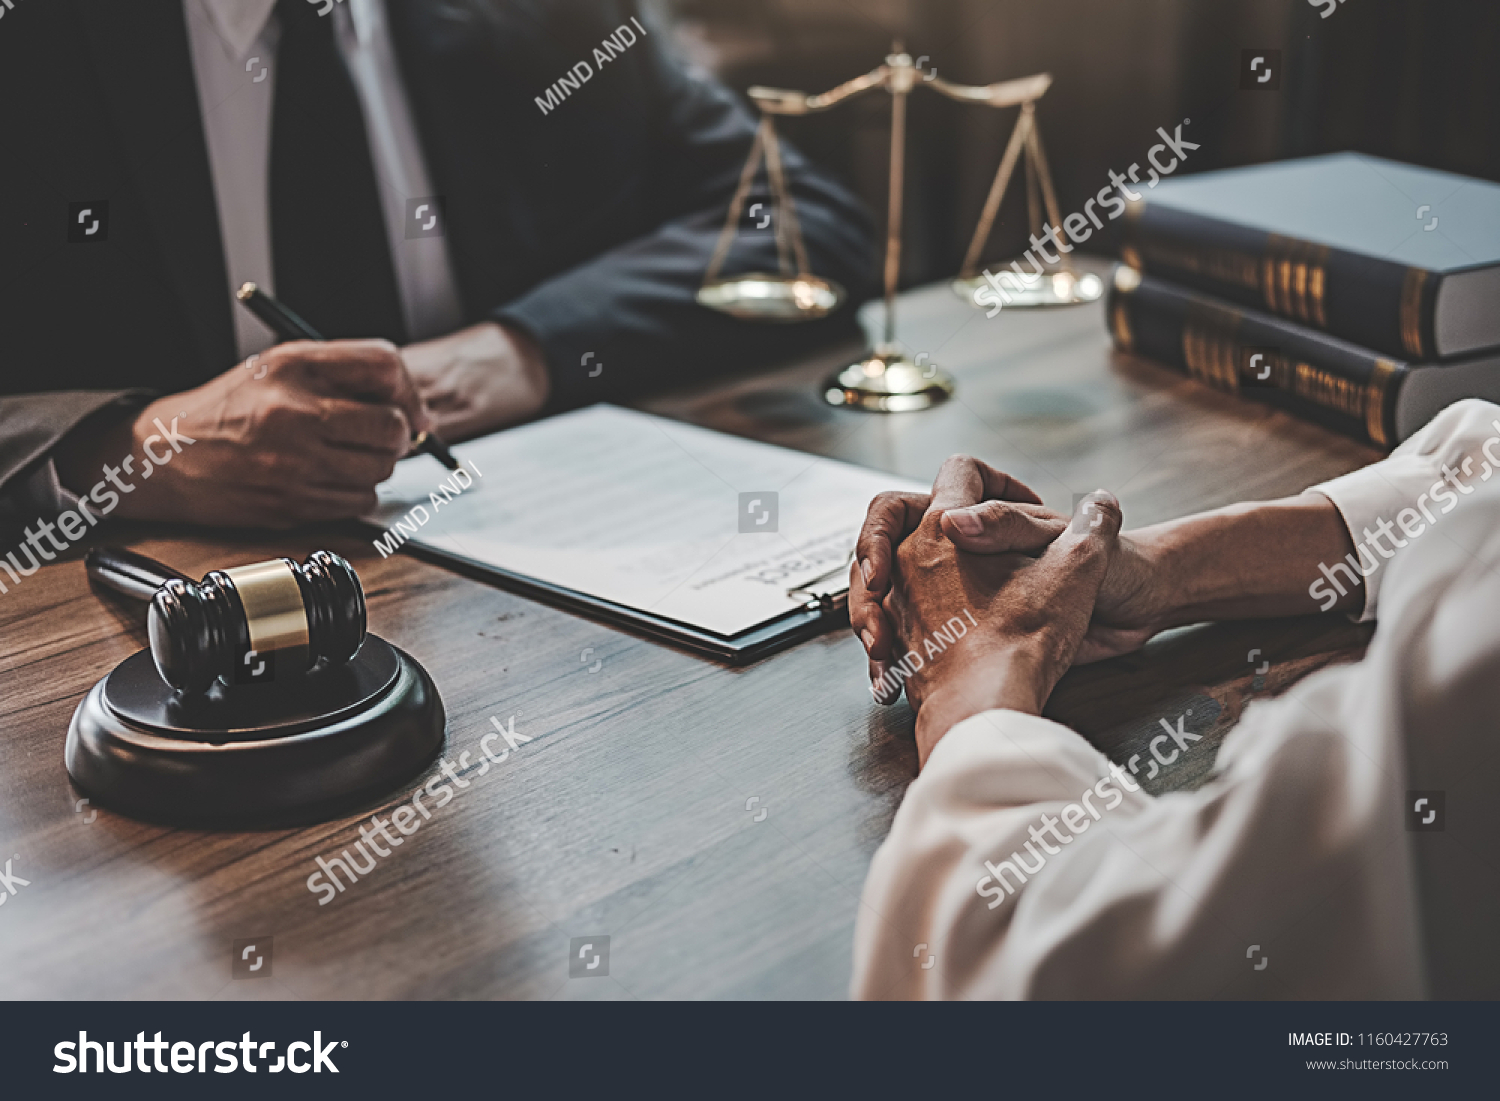 Judge gavel with Justice lawyers having team meeting at law firm background. Concepts of Law and Legal services. #1160427763